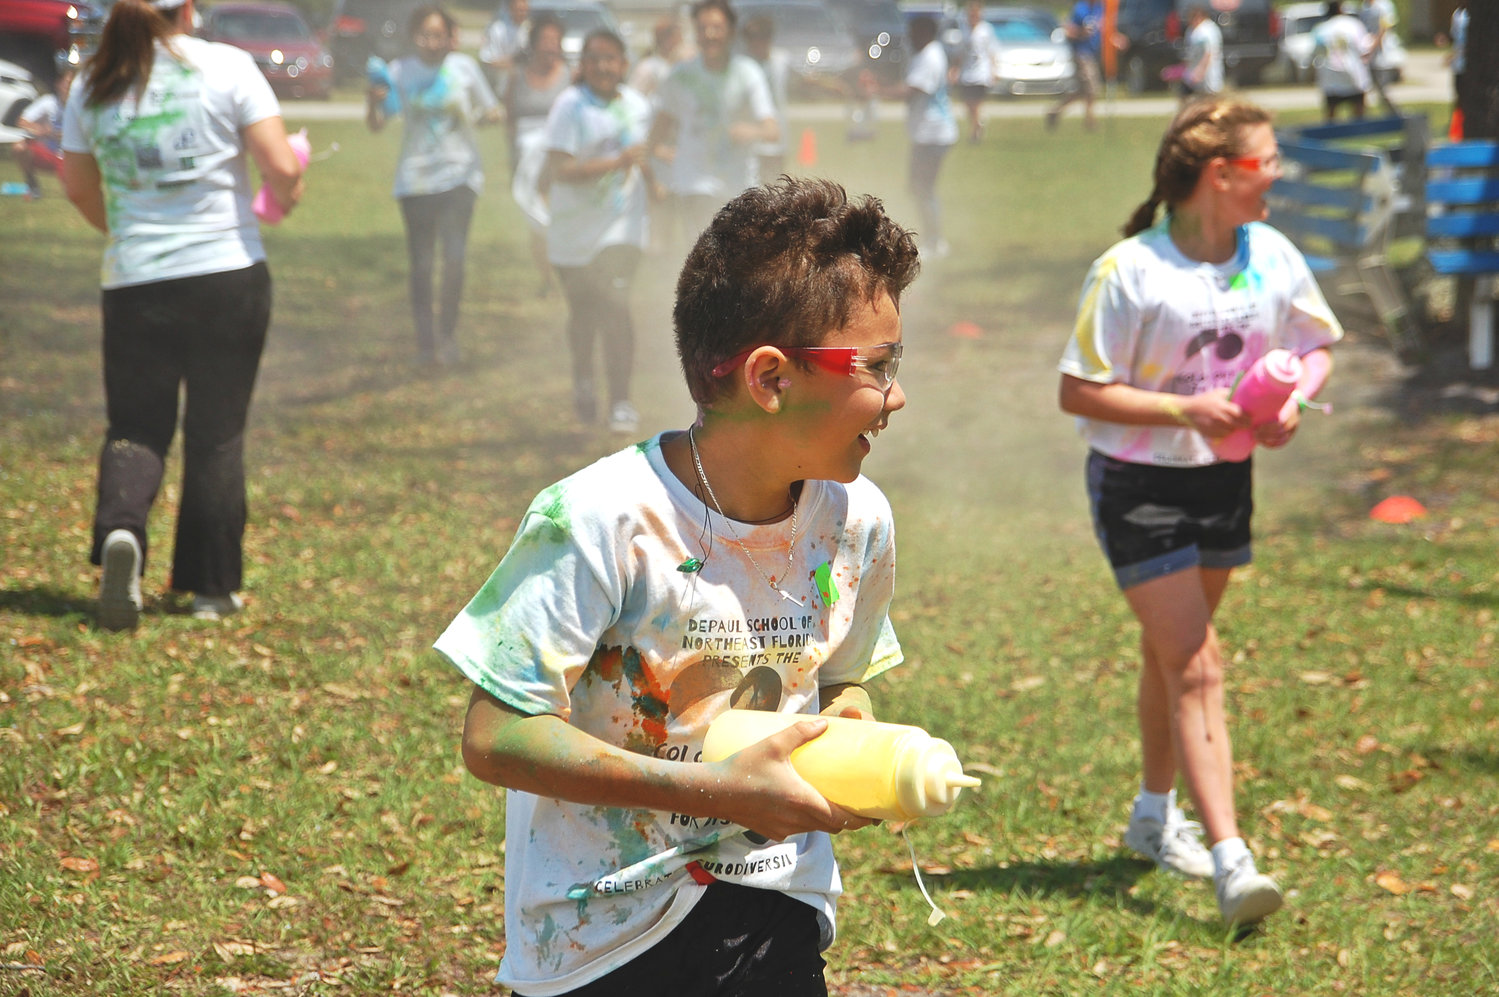 Elementary and middle schoolers in the Beaches area participate in a color run at DePaul School on April 26 to celebrate neurodiversity.